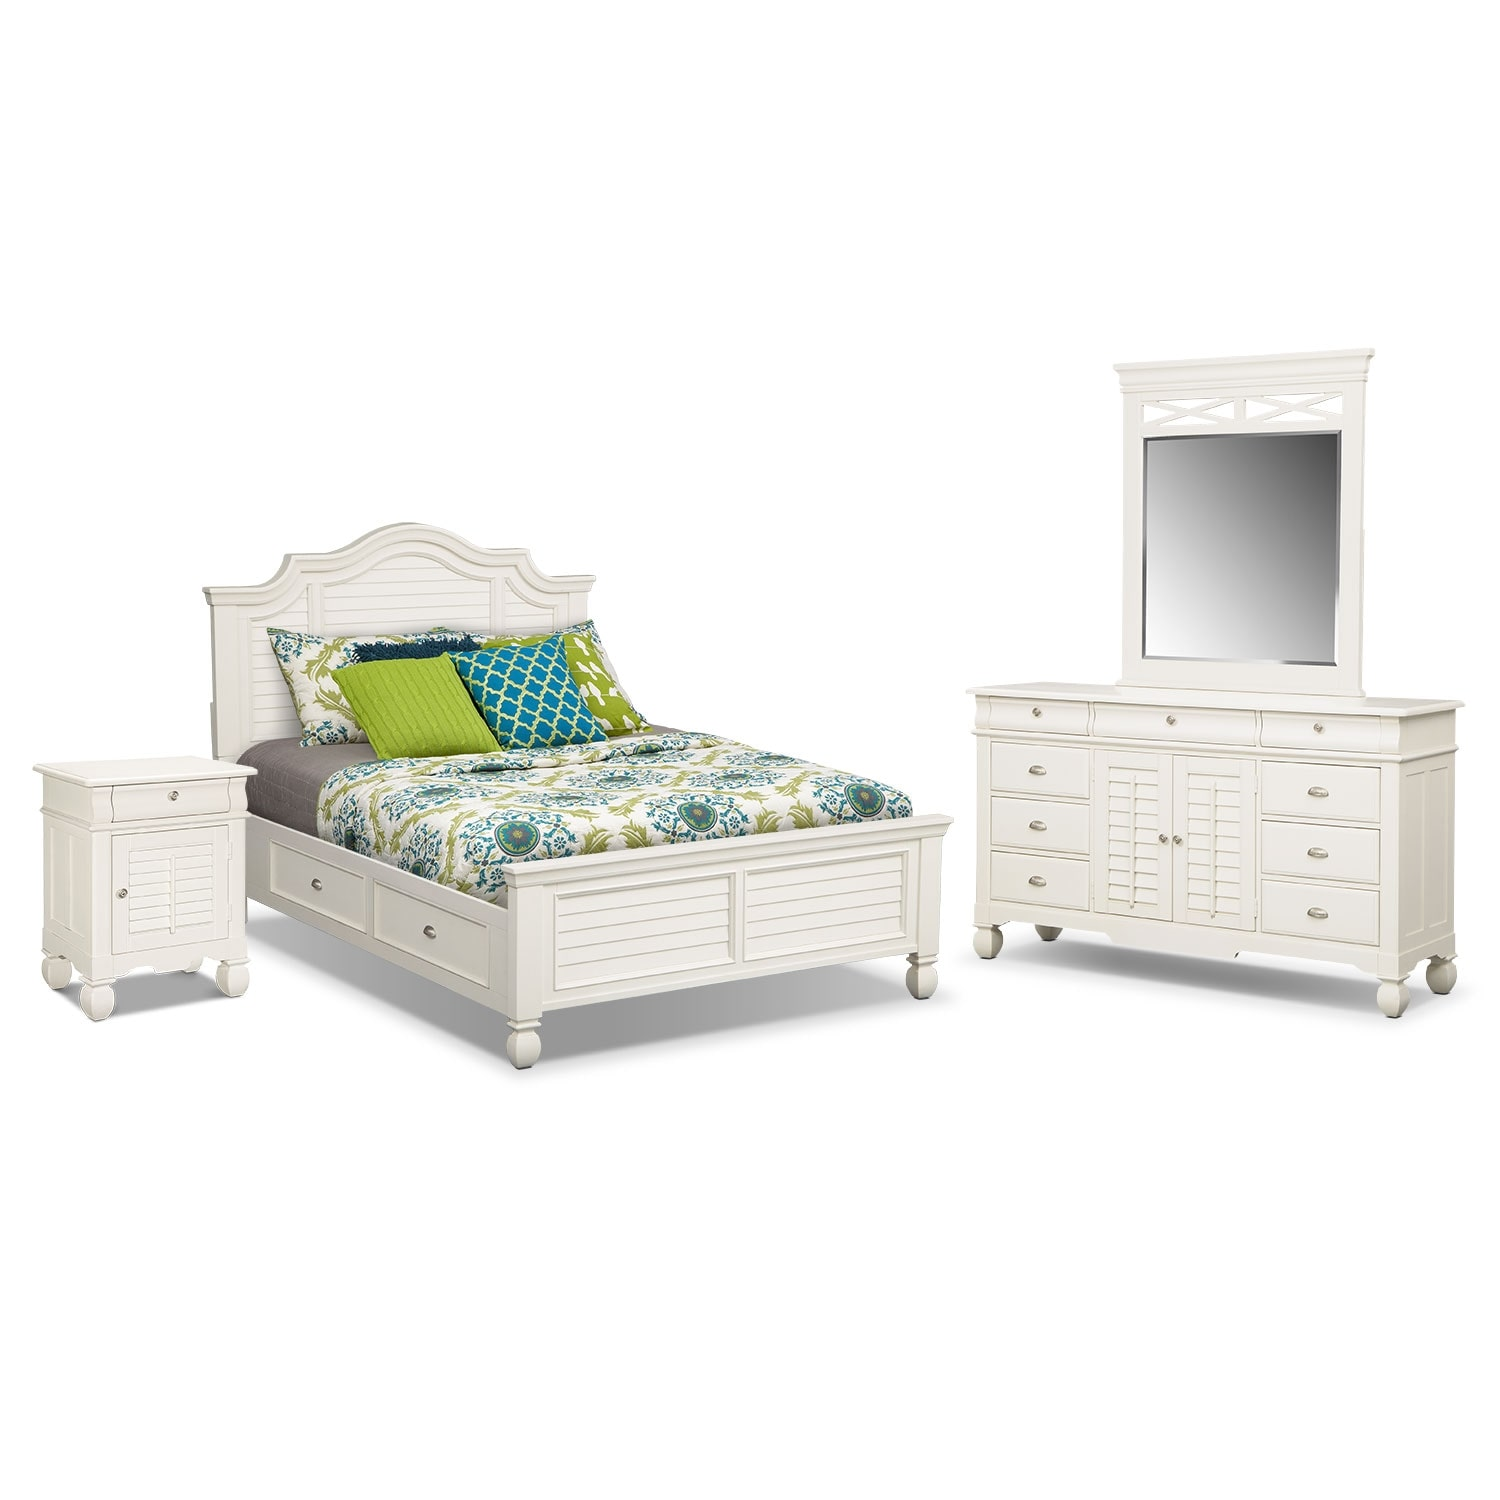 Plantation Cove 6-Piece Queen Storage Bedroom Set with Door Nightstand - White